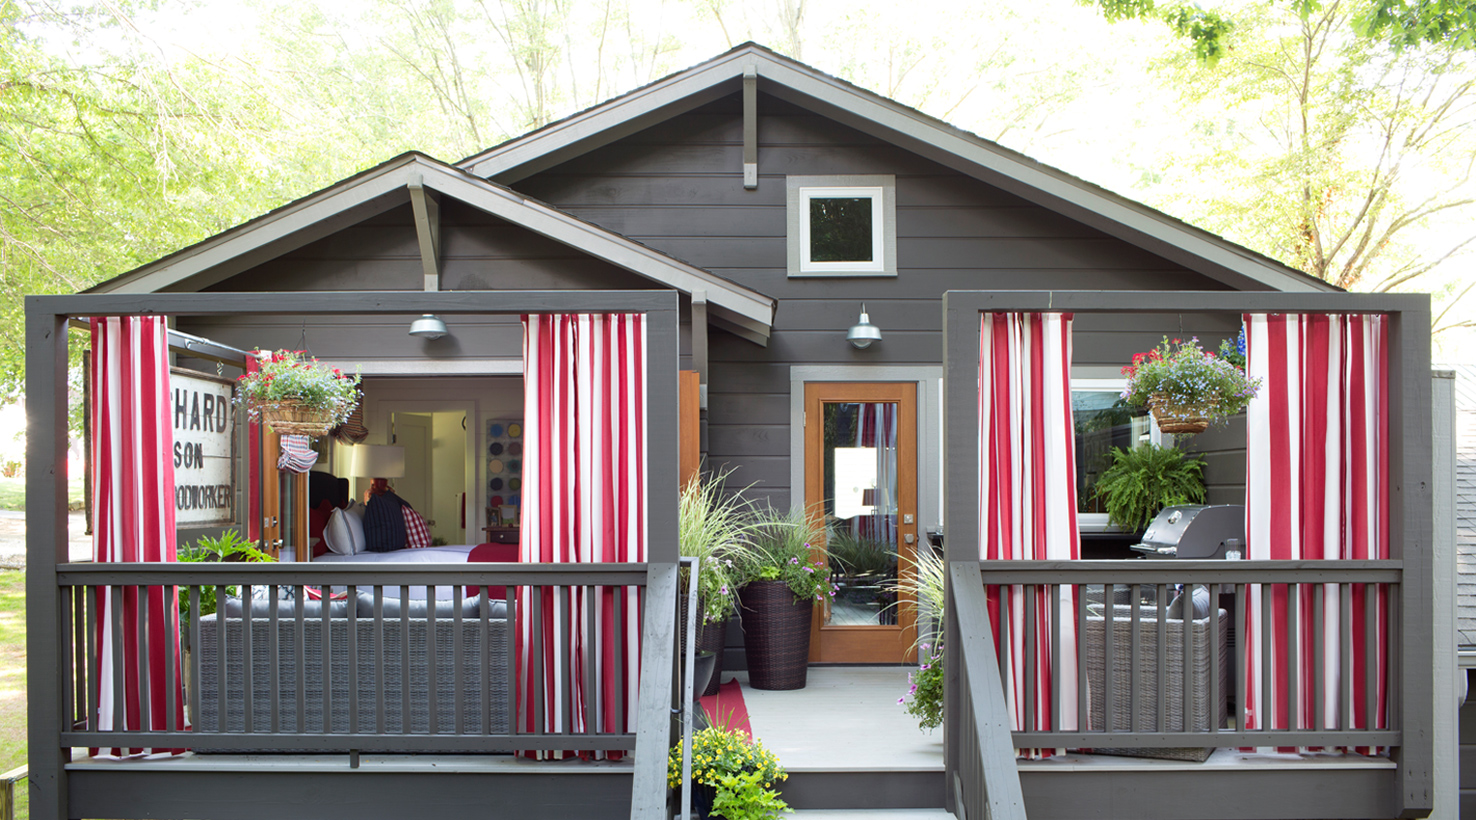 2015 hgtv urban oasis by sherwin williams - Sherwin williams black fox exterior ...